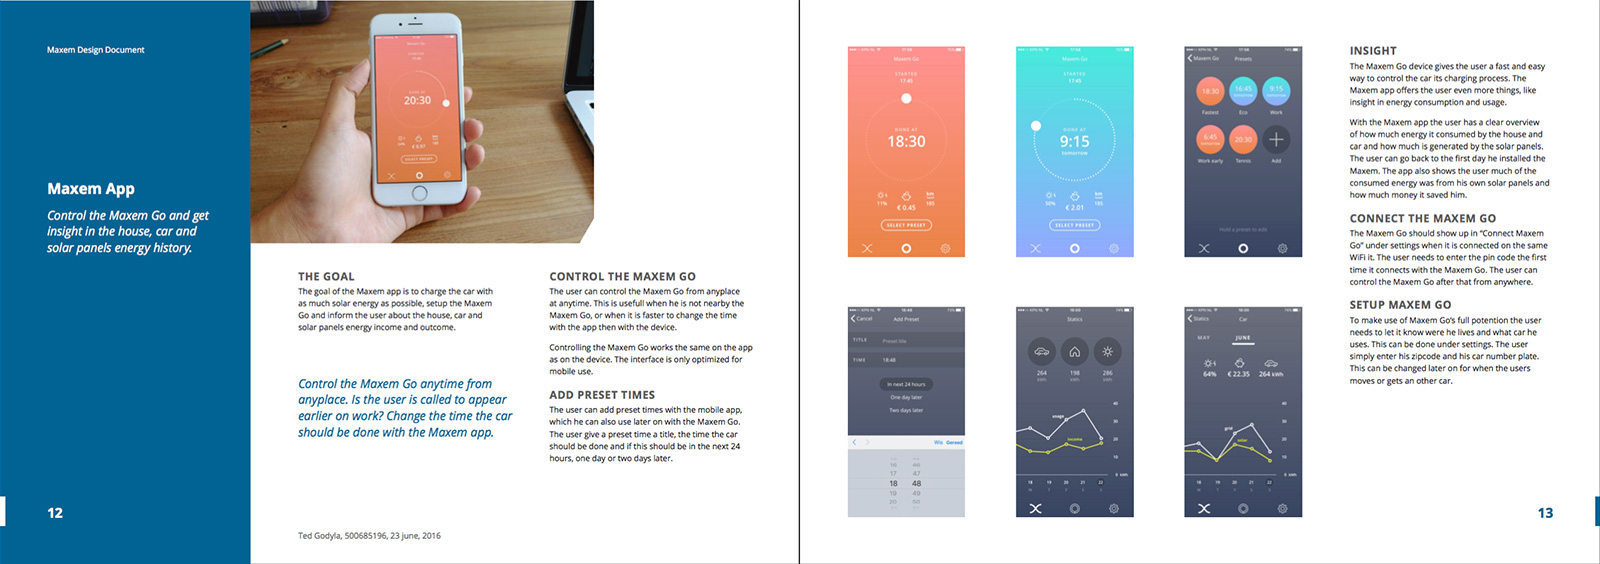 Maxem Go design document